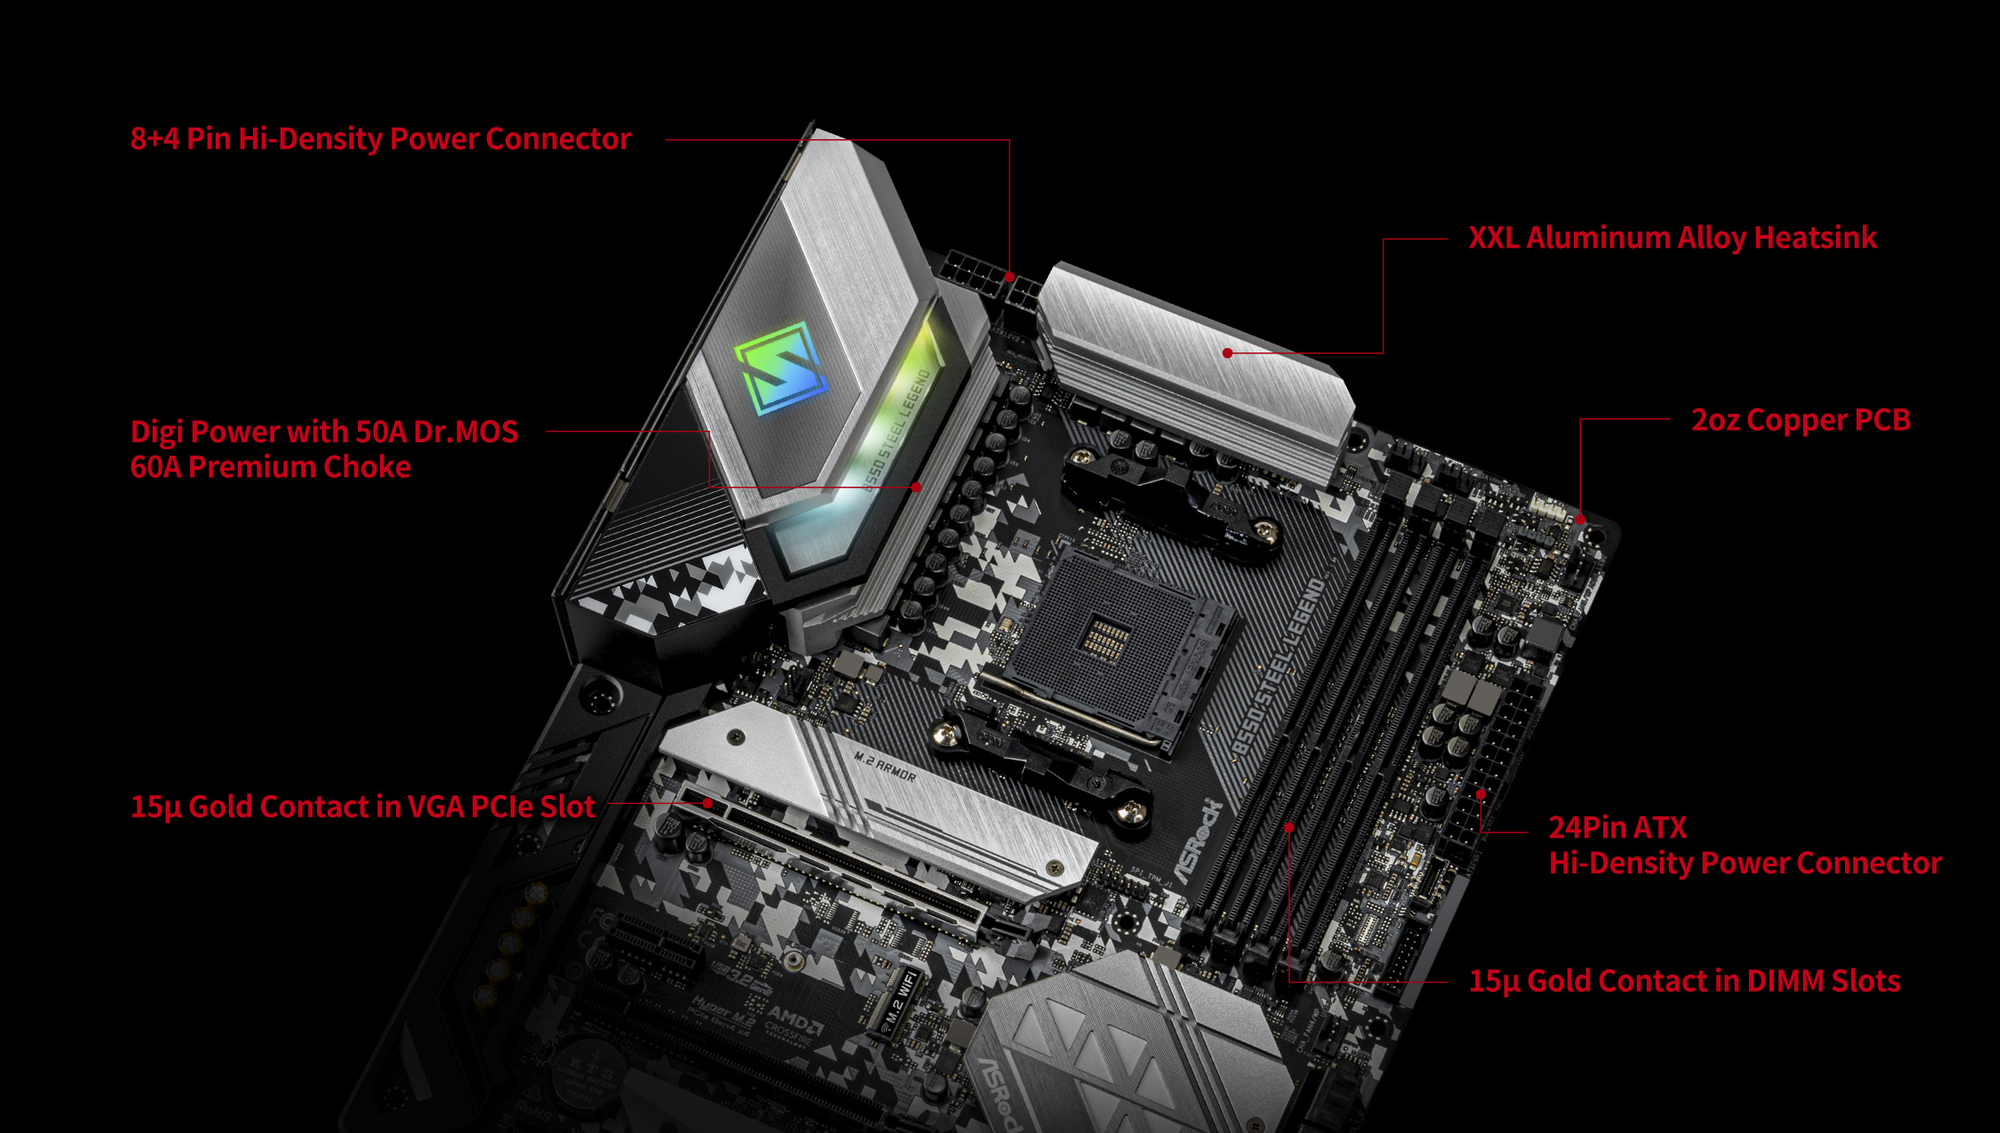 top side of the motherboard